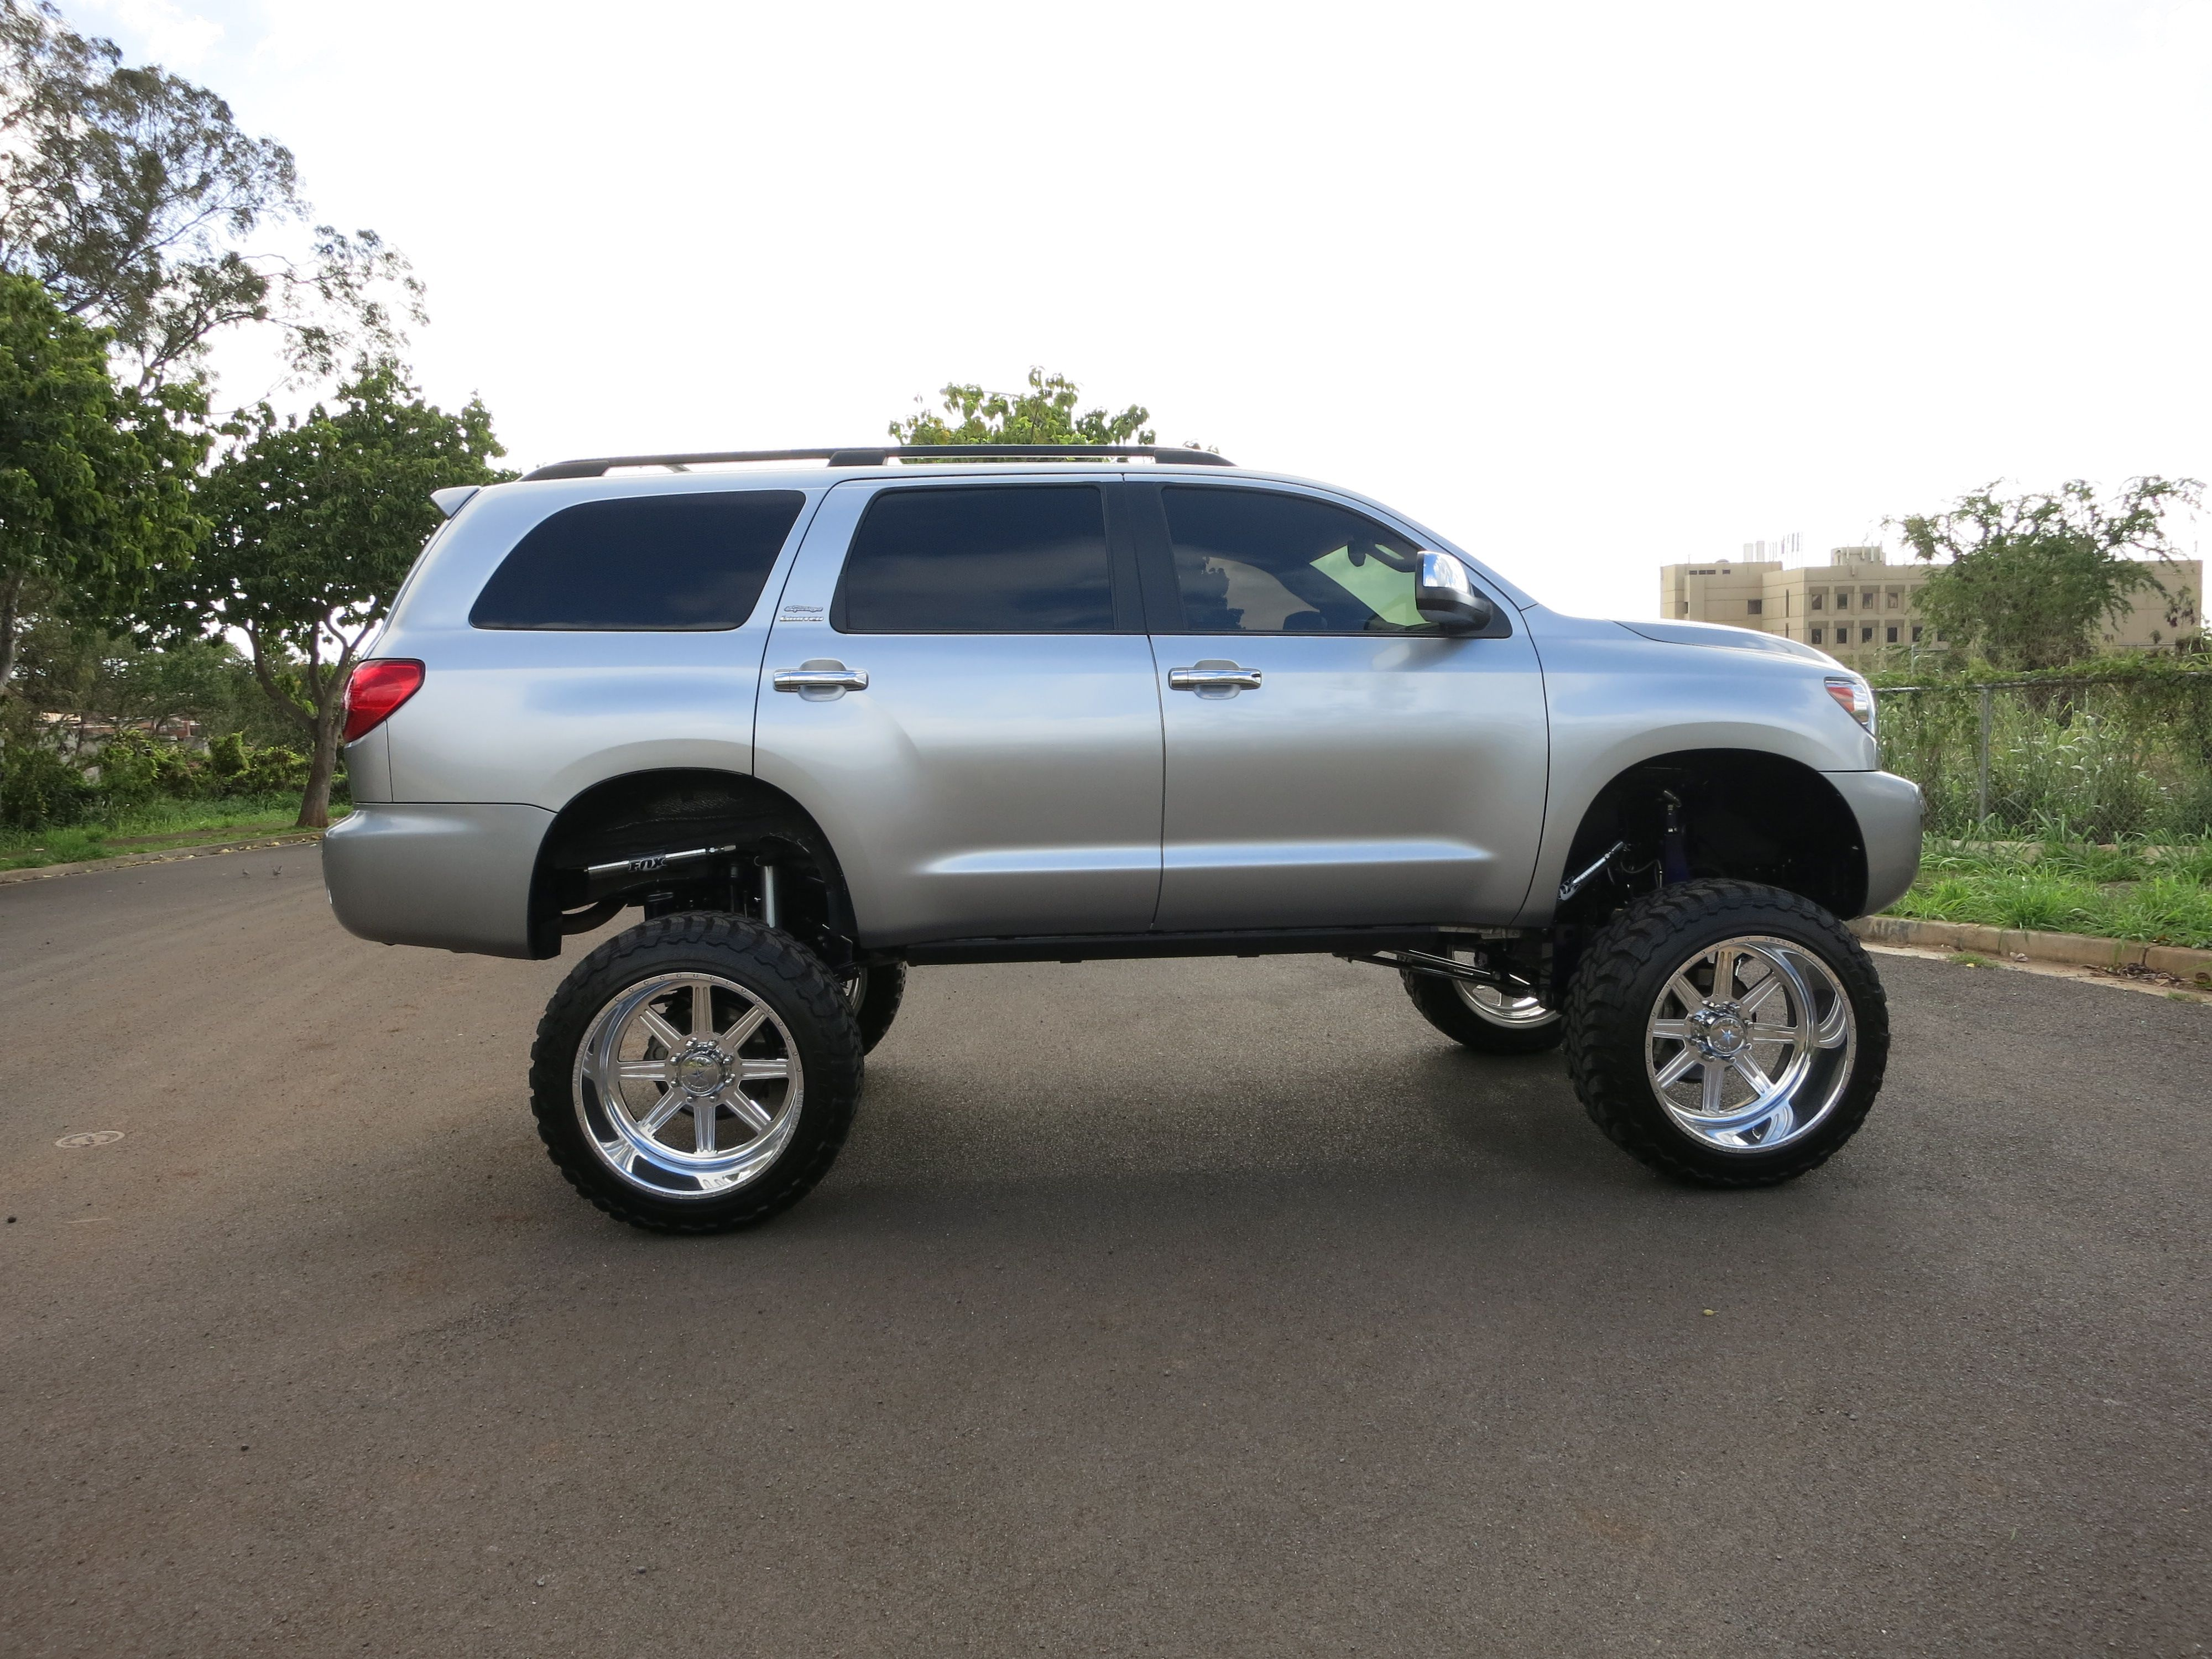 Ready For A Surprise Check Our New Toyota Sequoia 12 Lift Kit Off Road White